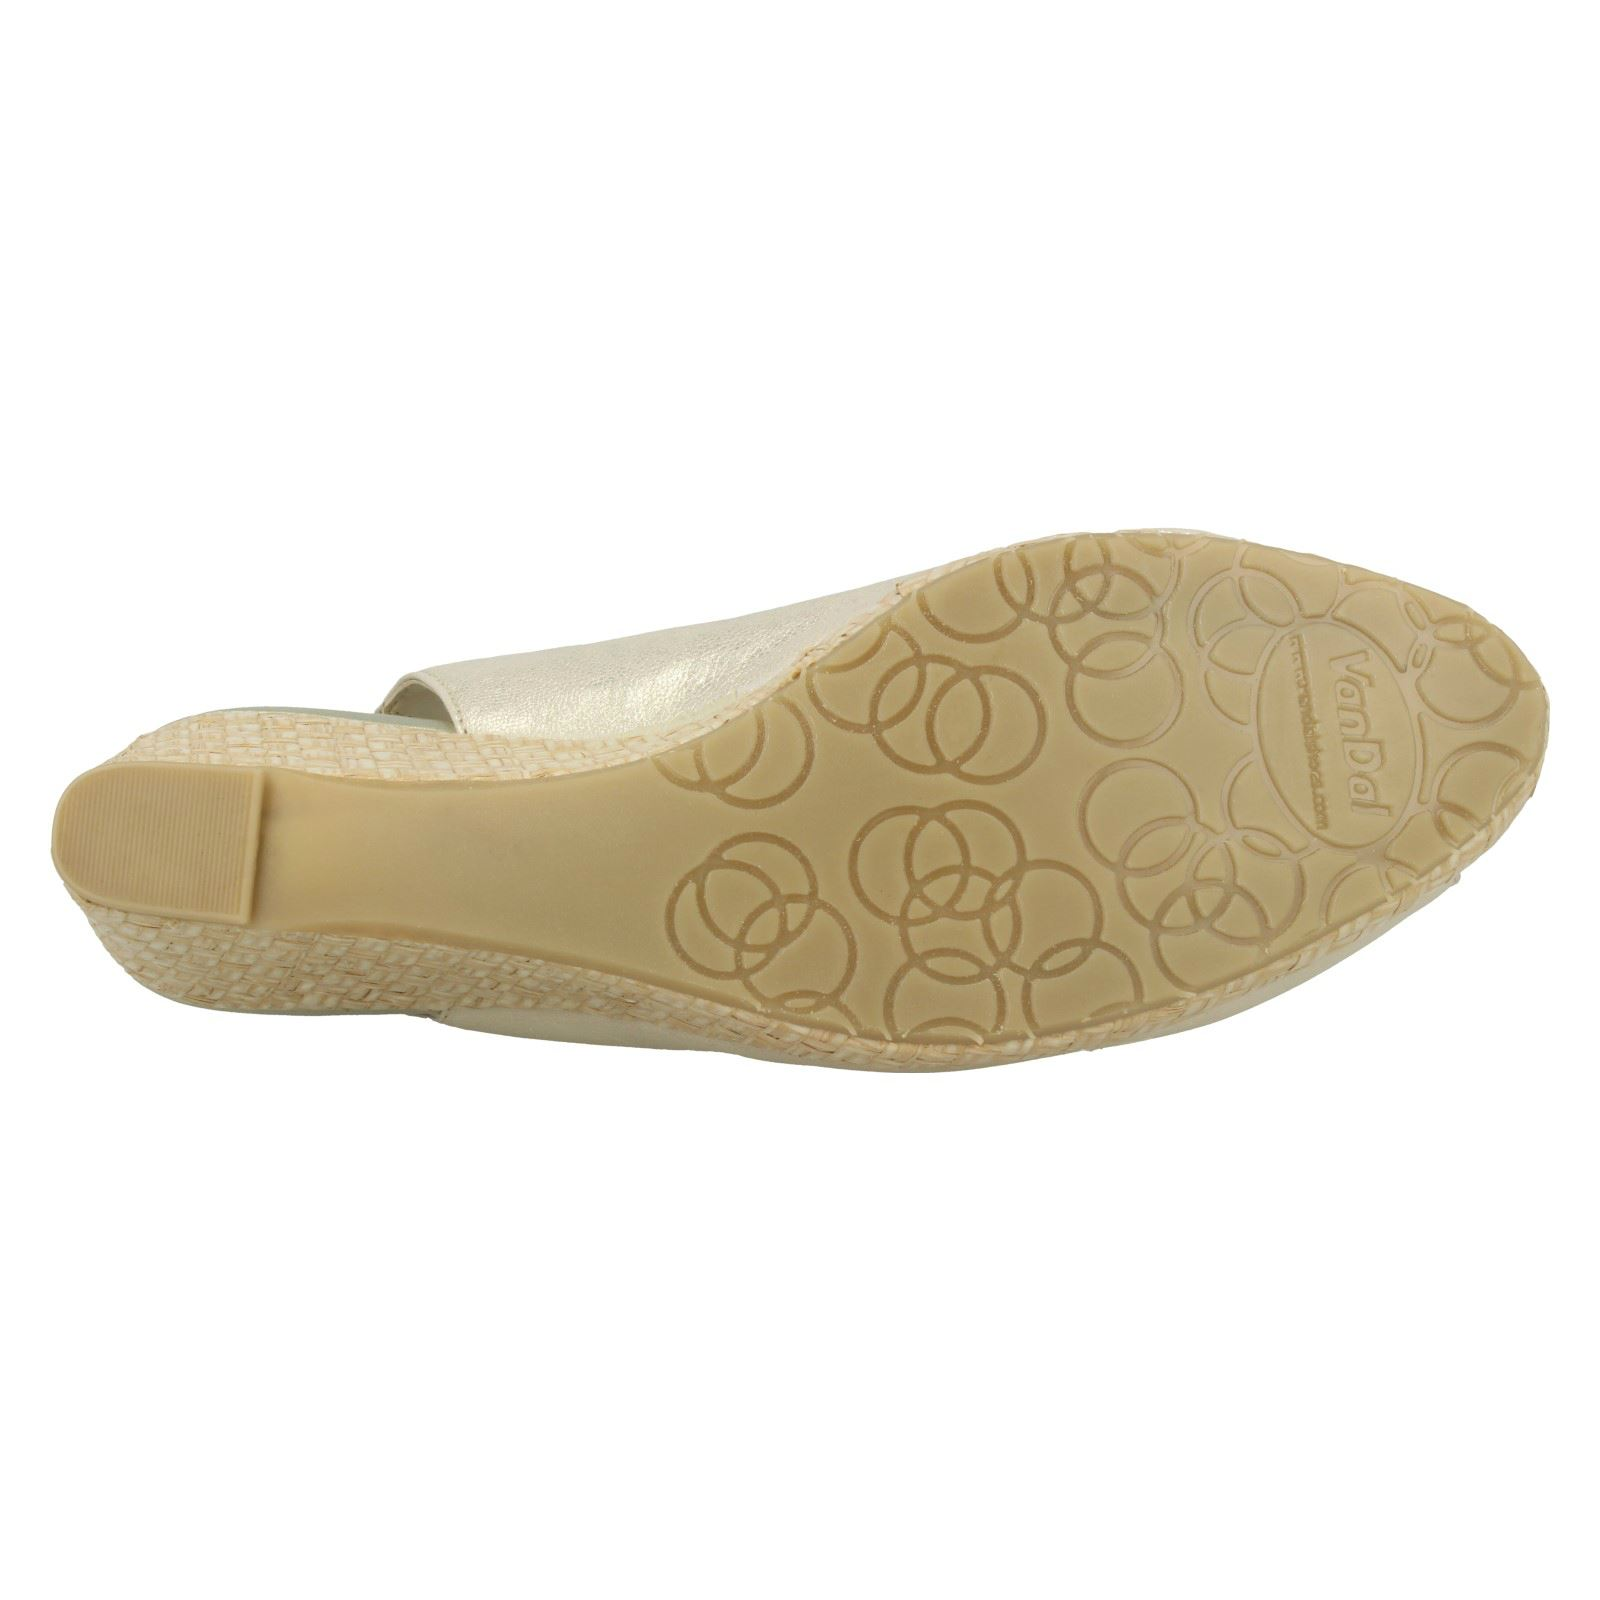 Ladies-Van-Dal-Leather-Wedge-Sandal-With-Woven-Detail-Avalon thumbnail 13